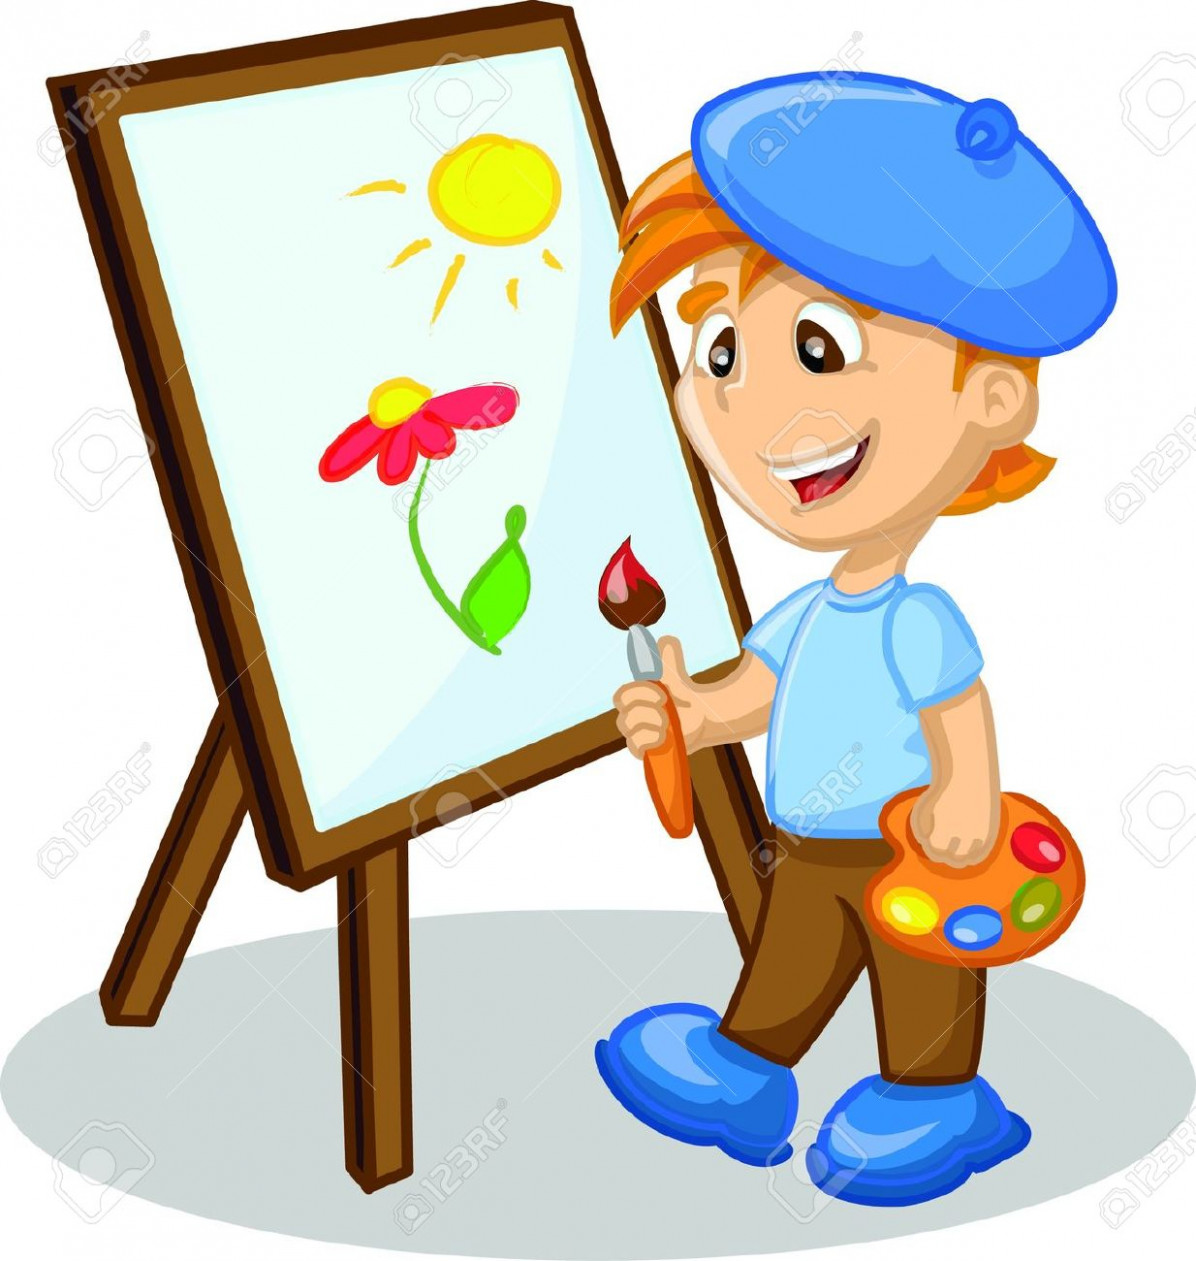 Painter clipart child painting, Painter child painting.